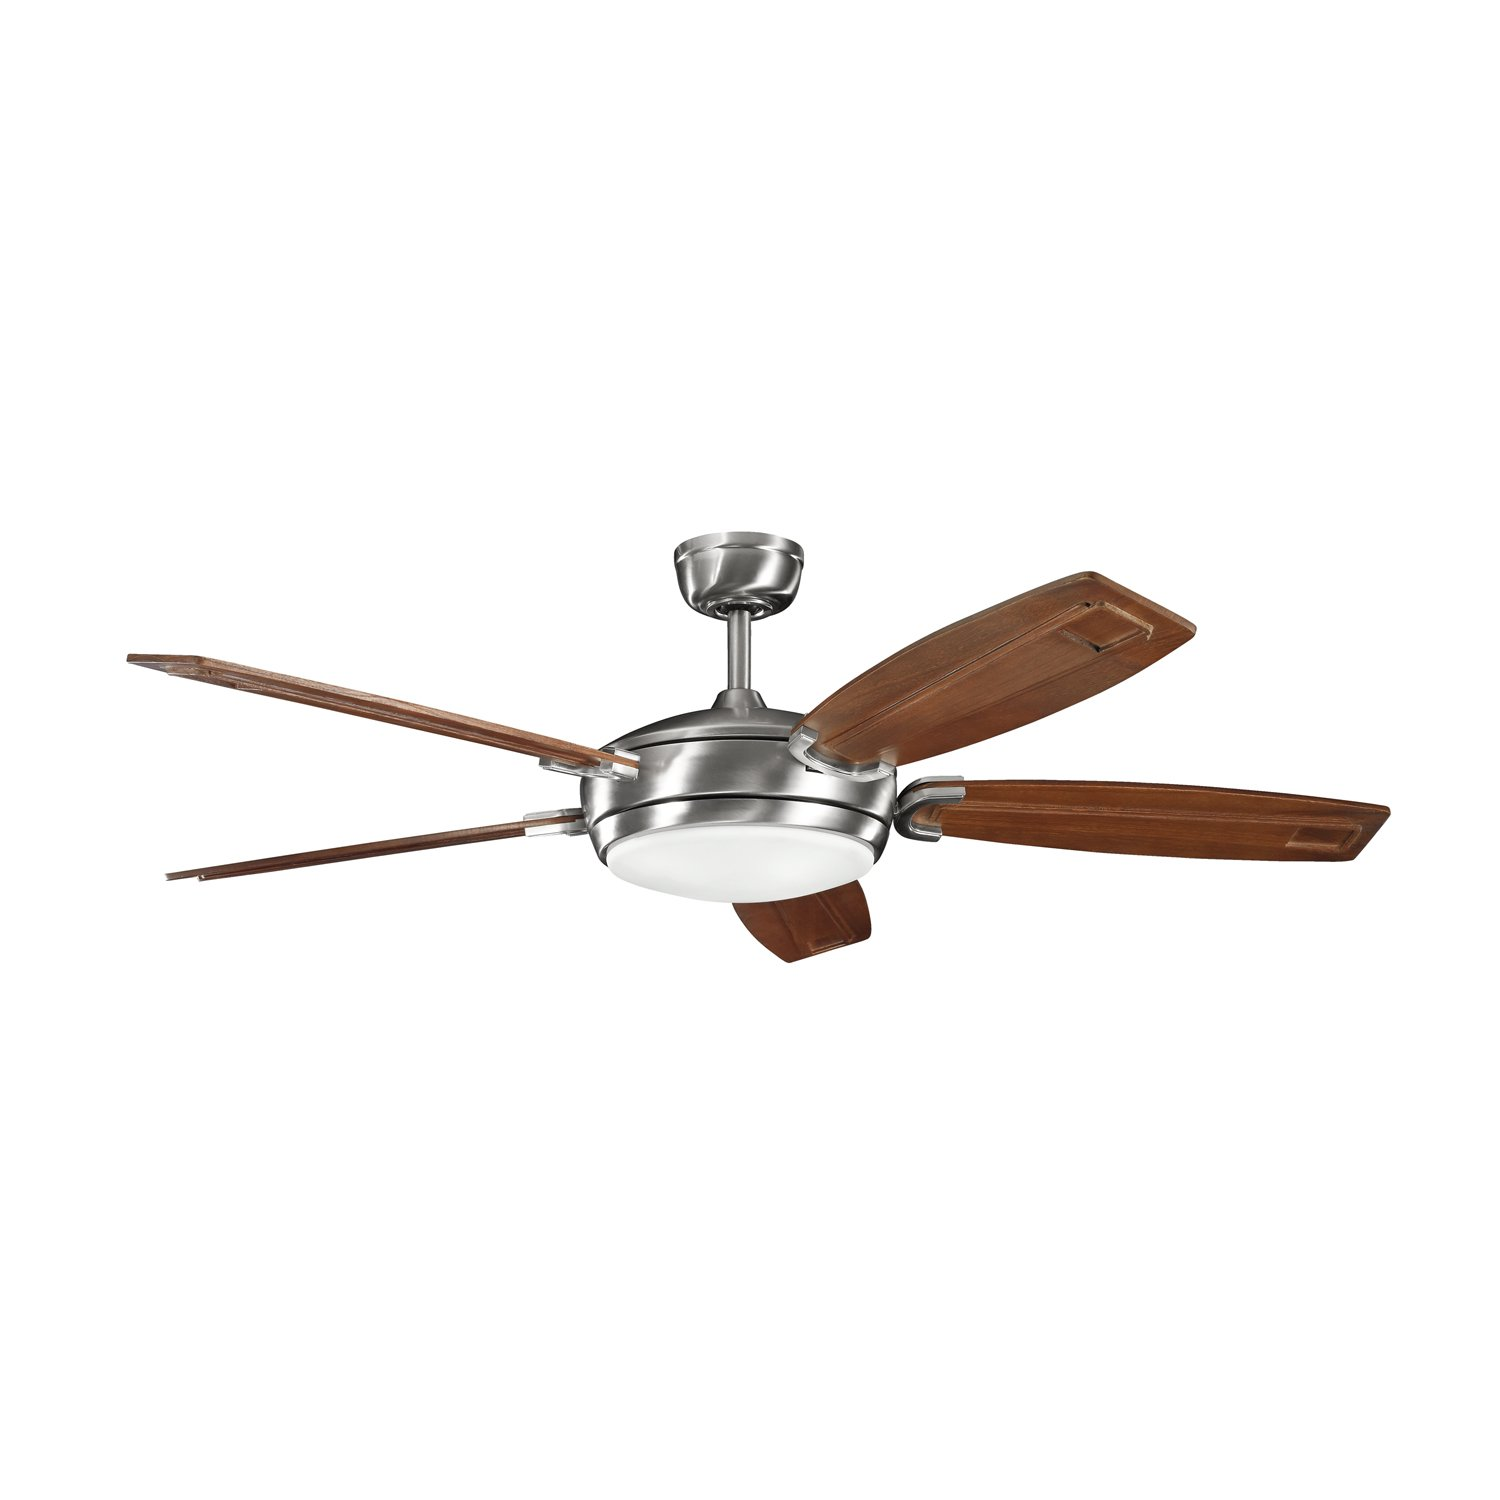 Kichler BSS 60 Ceiling Fan Amazon